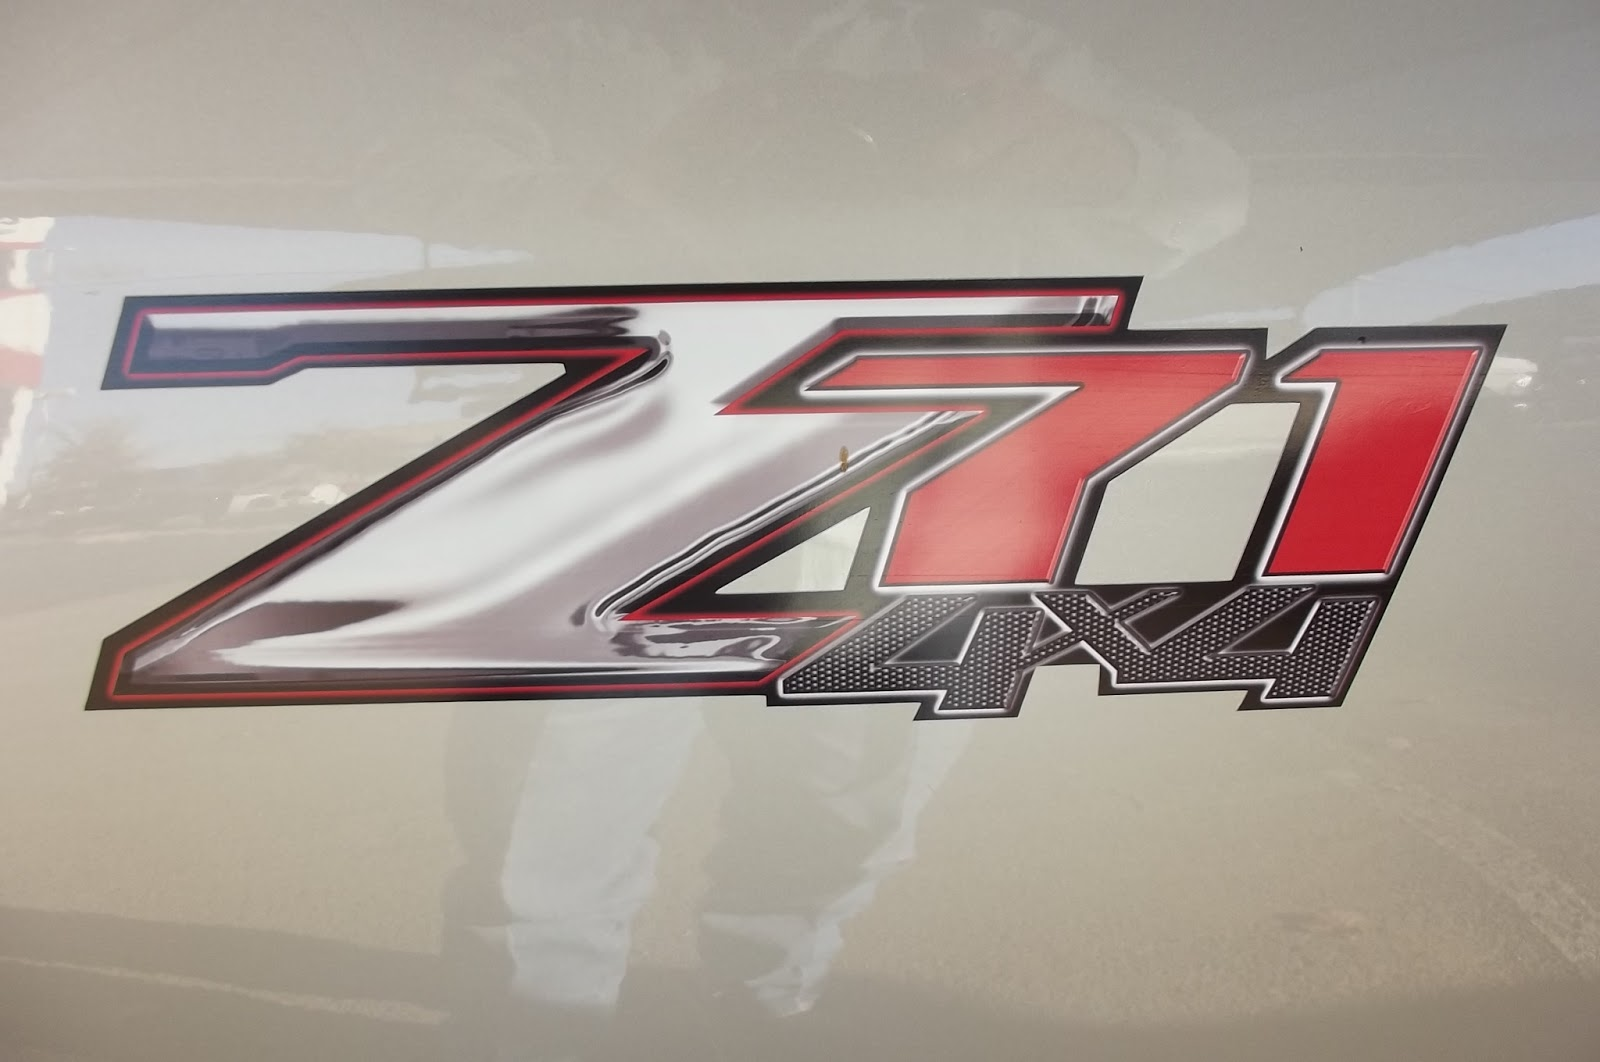 TDY Sales Texas Car Deal - $14,991 For Sale 2006 GMC Canyon Z71 4x4 crew cab truck 74k miles 3 ...